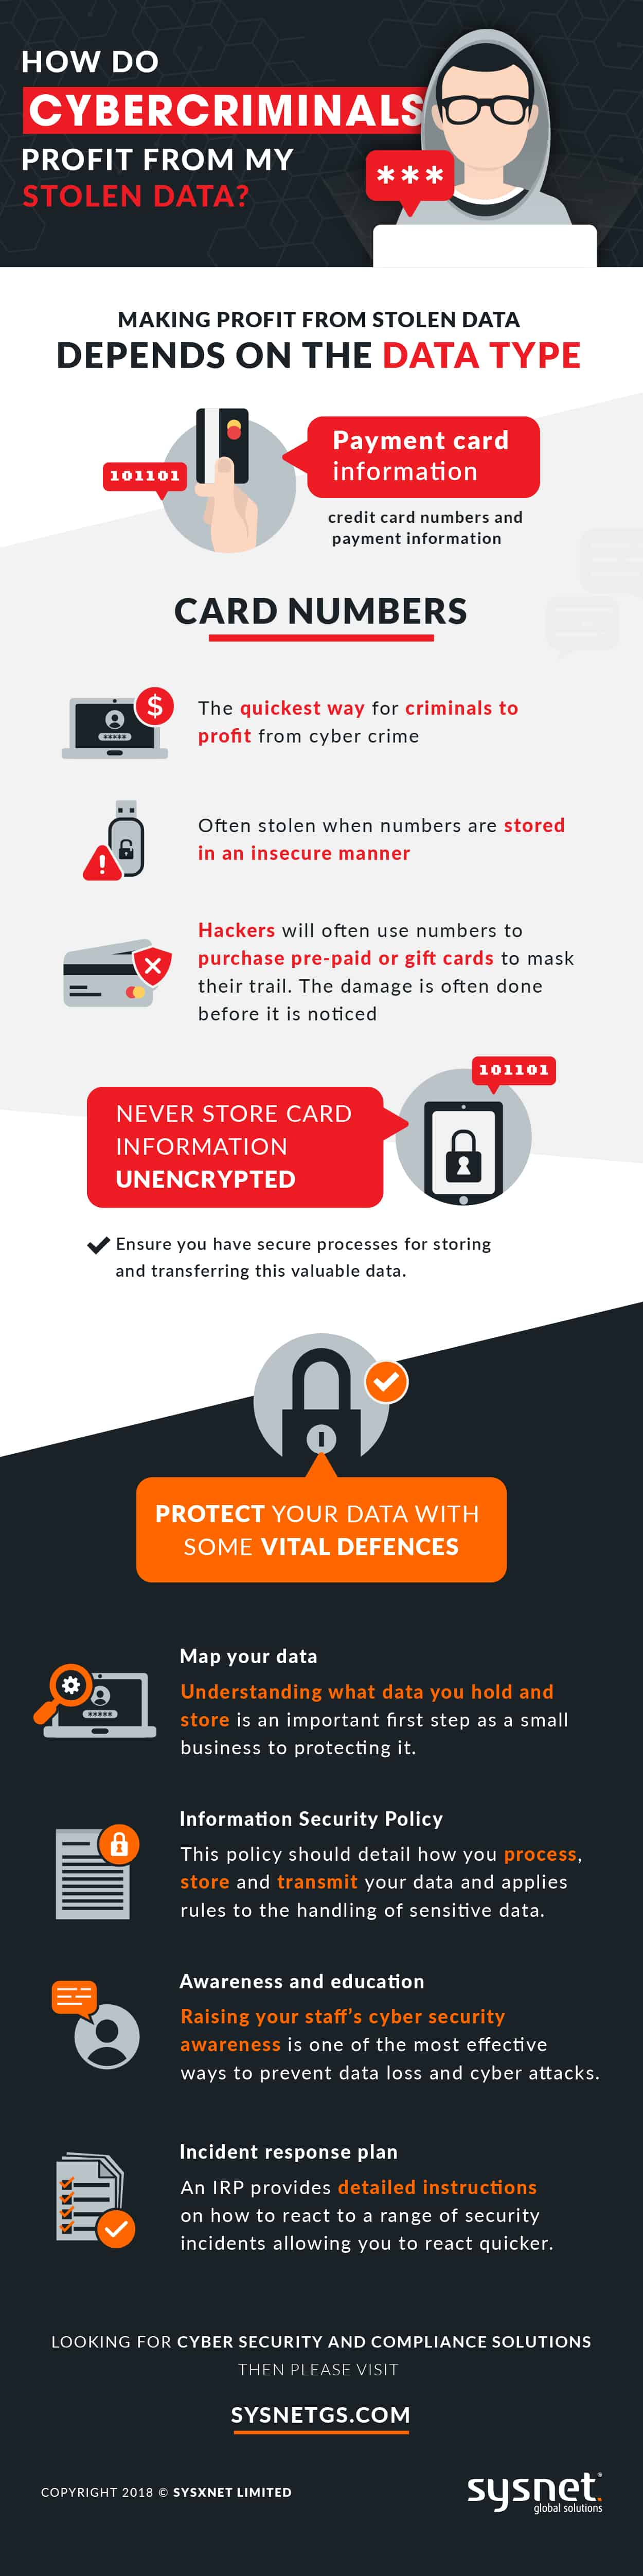 What do Cybercriminals do with the data they steal - Part 3